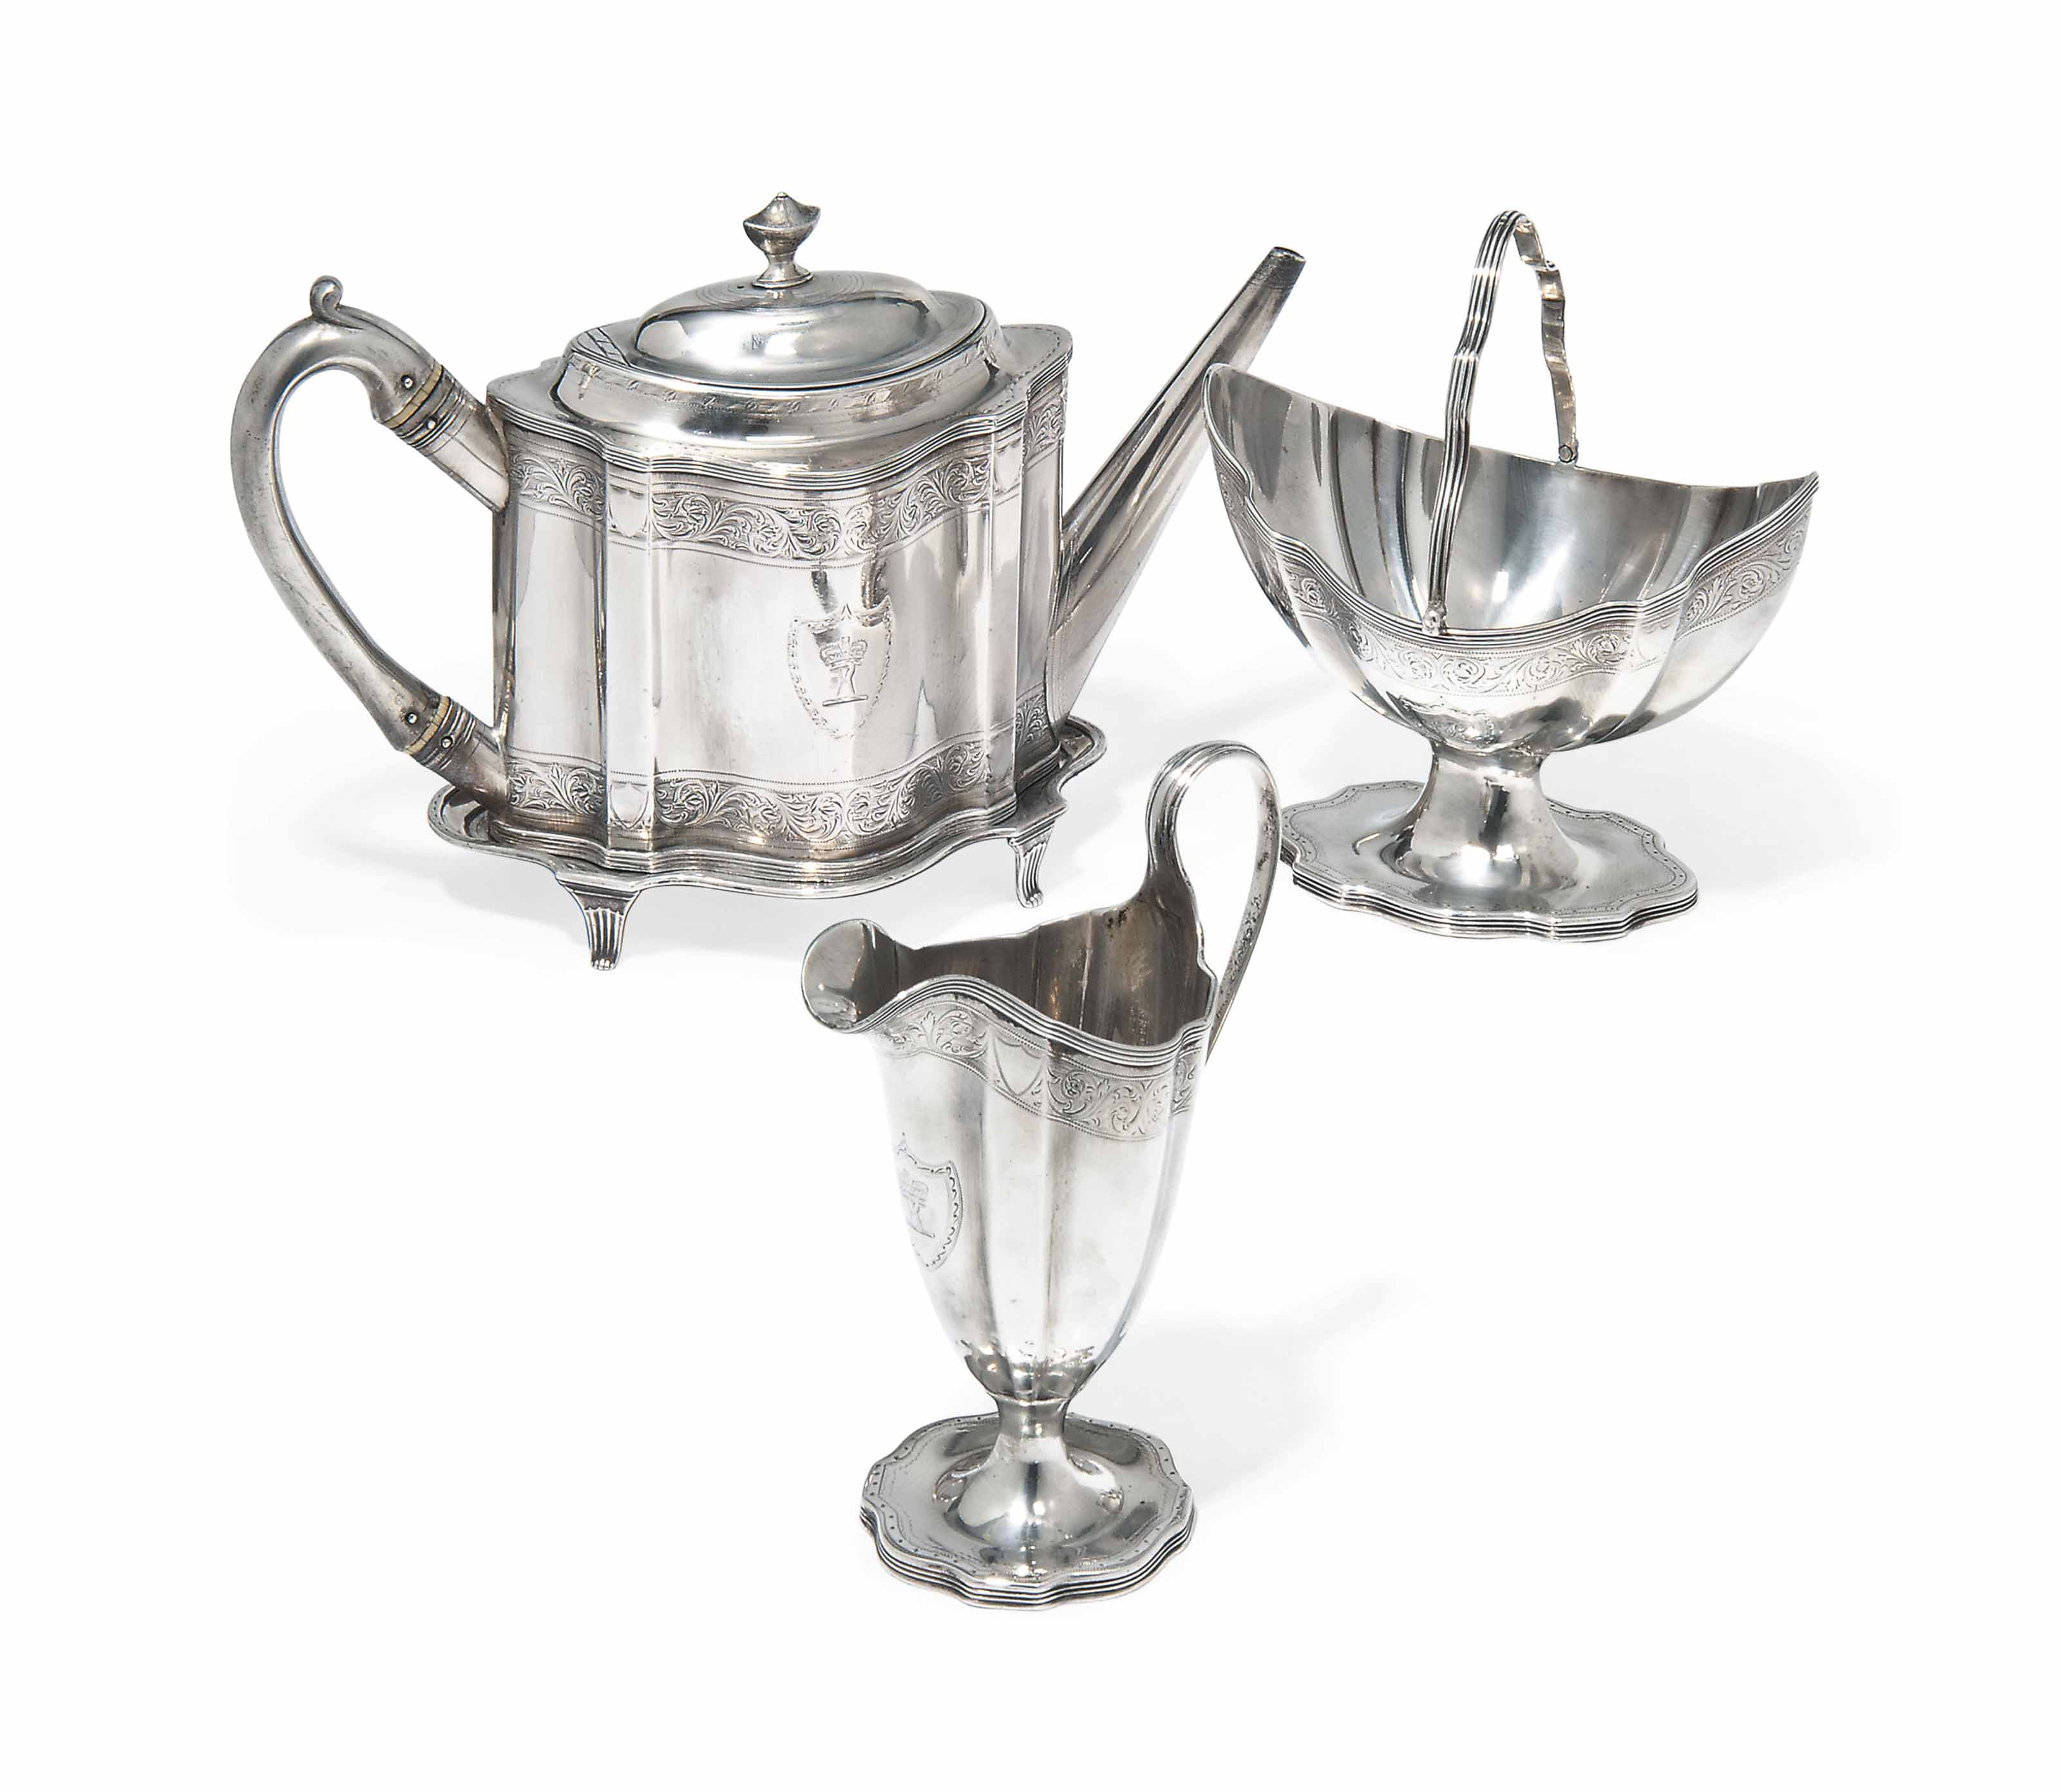 A GEORGE III SILVER TEAPOT AND STAND WITH SUGAR BASKET AND CREAM JUG EN SUITE